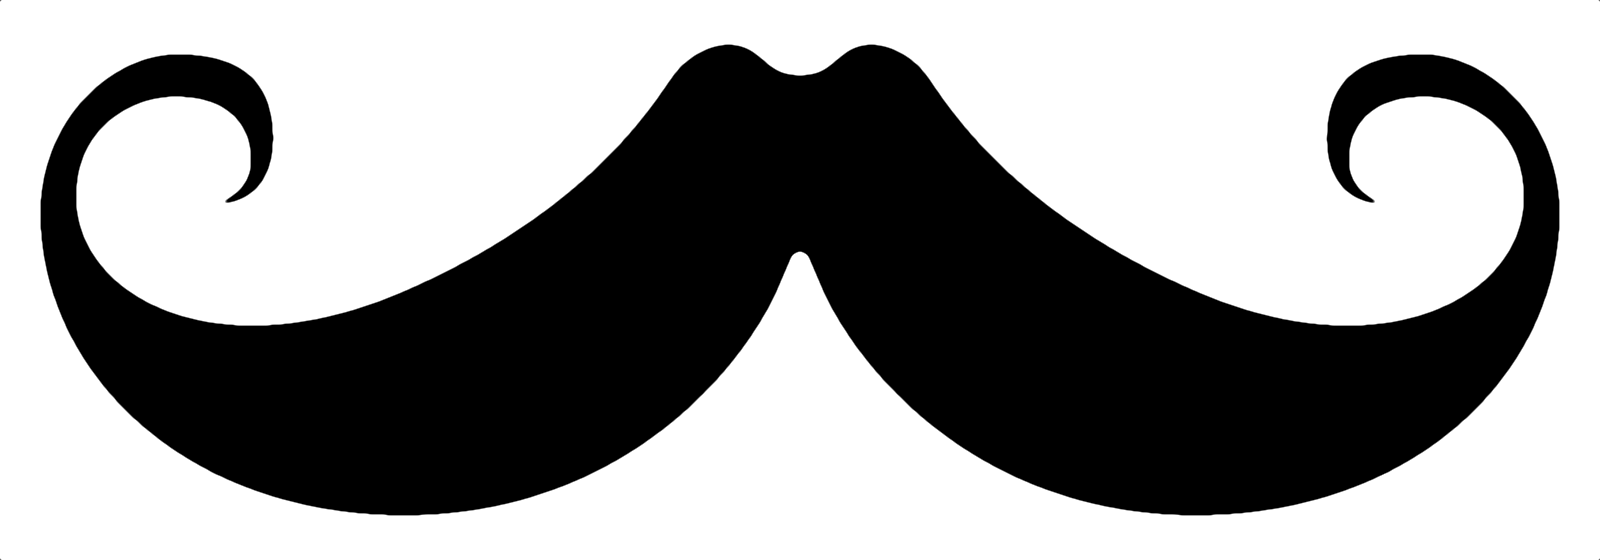 French Mustache Black Mustache